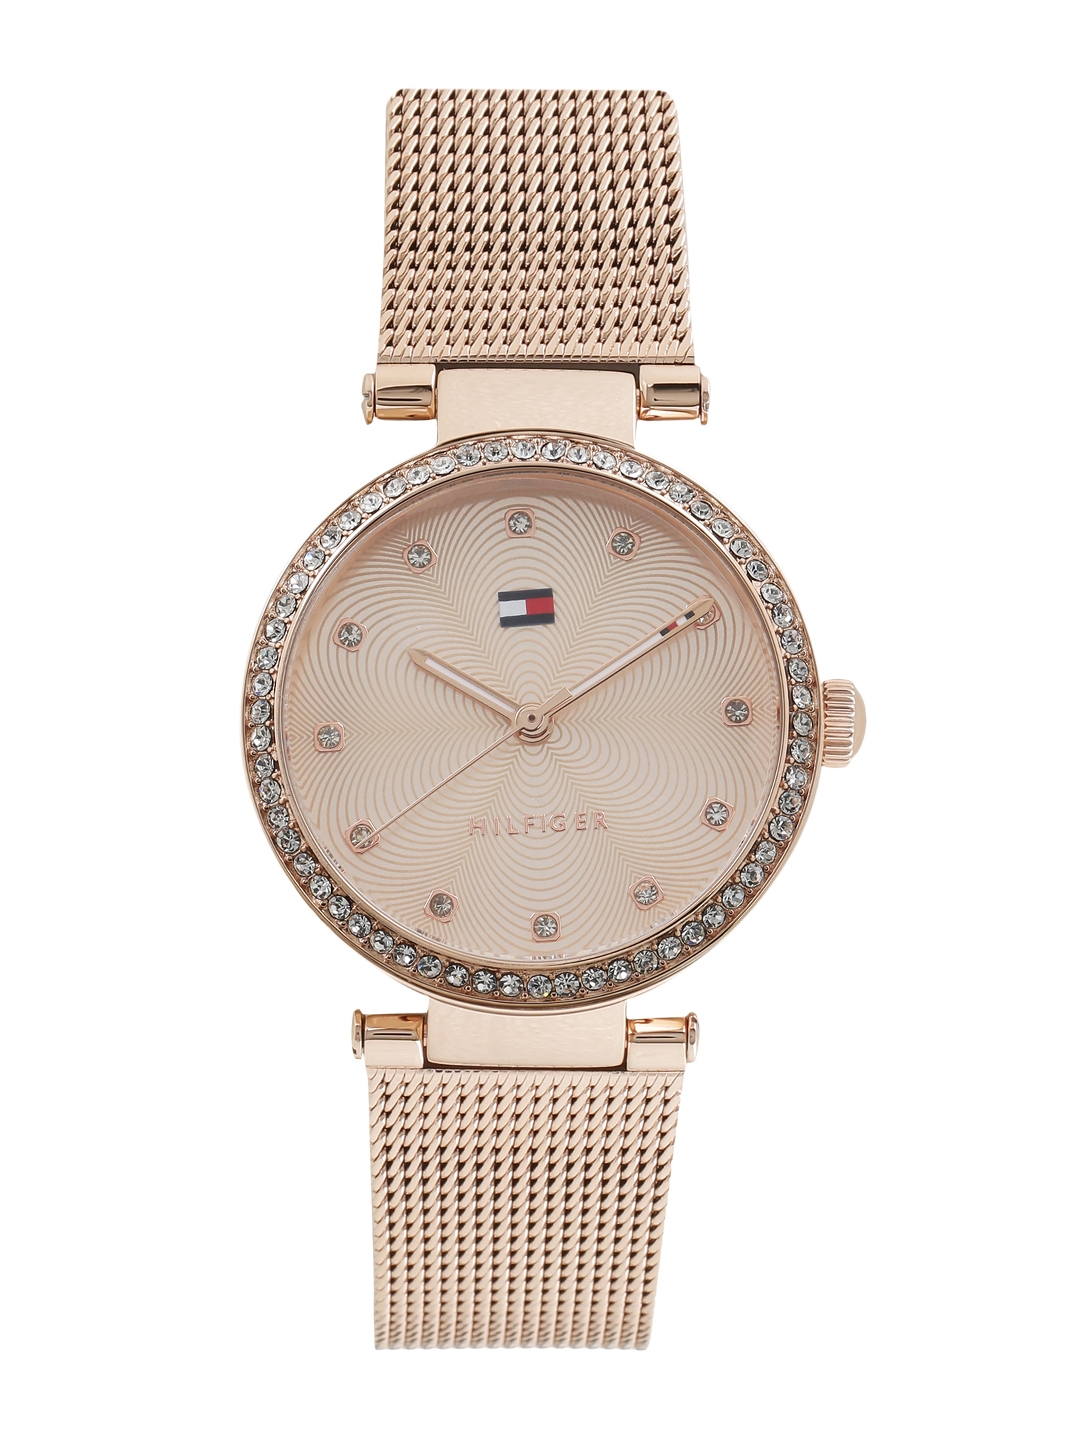 3bc51070e Tommy Hilfiger Women Rose Gold Analogue Watch TH1781865. Best Price: ...